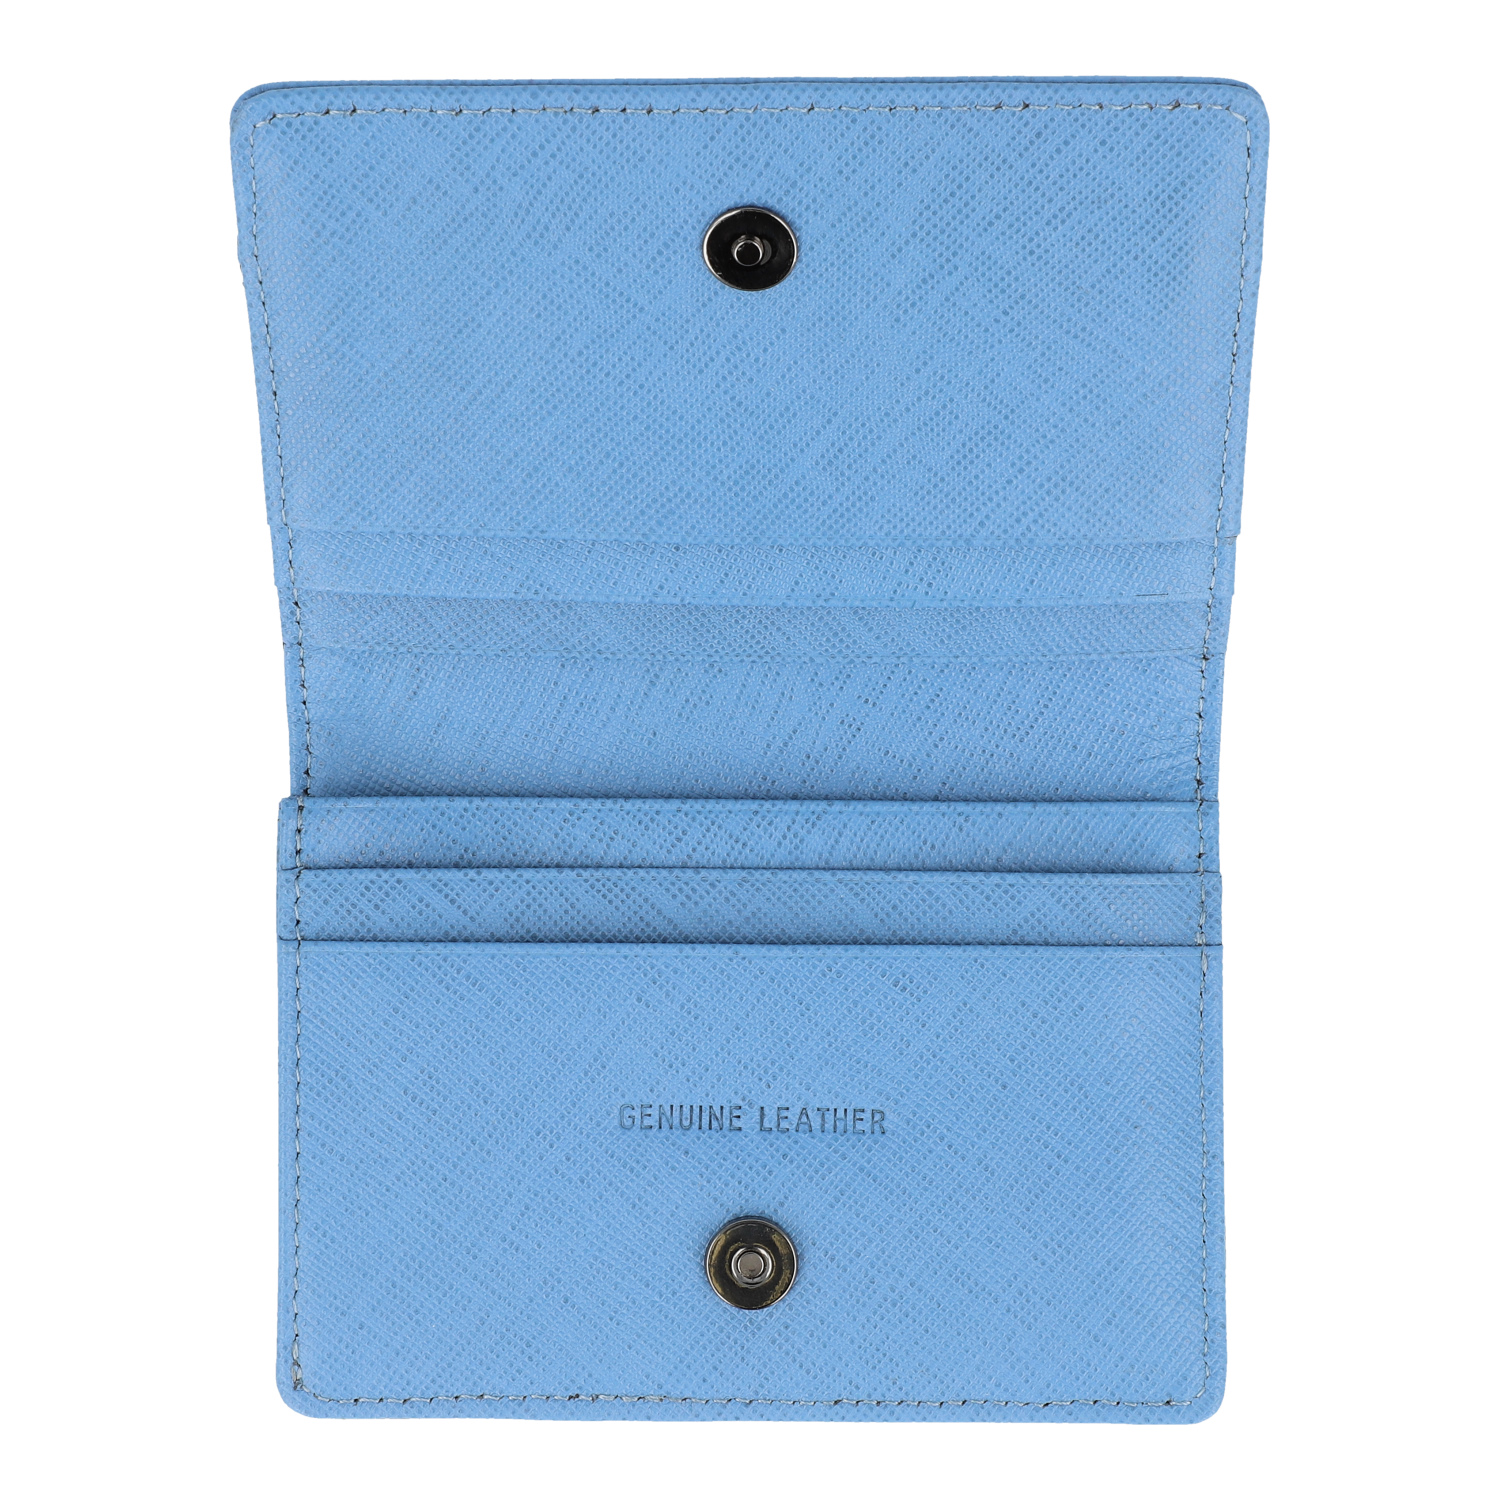 7a749e9e099f Buy Crossing Saffiano Card Holder - Breaker - Blue in Singapore   Malaysia  - The Wallet Shop